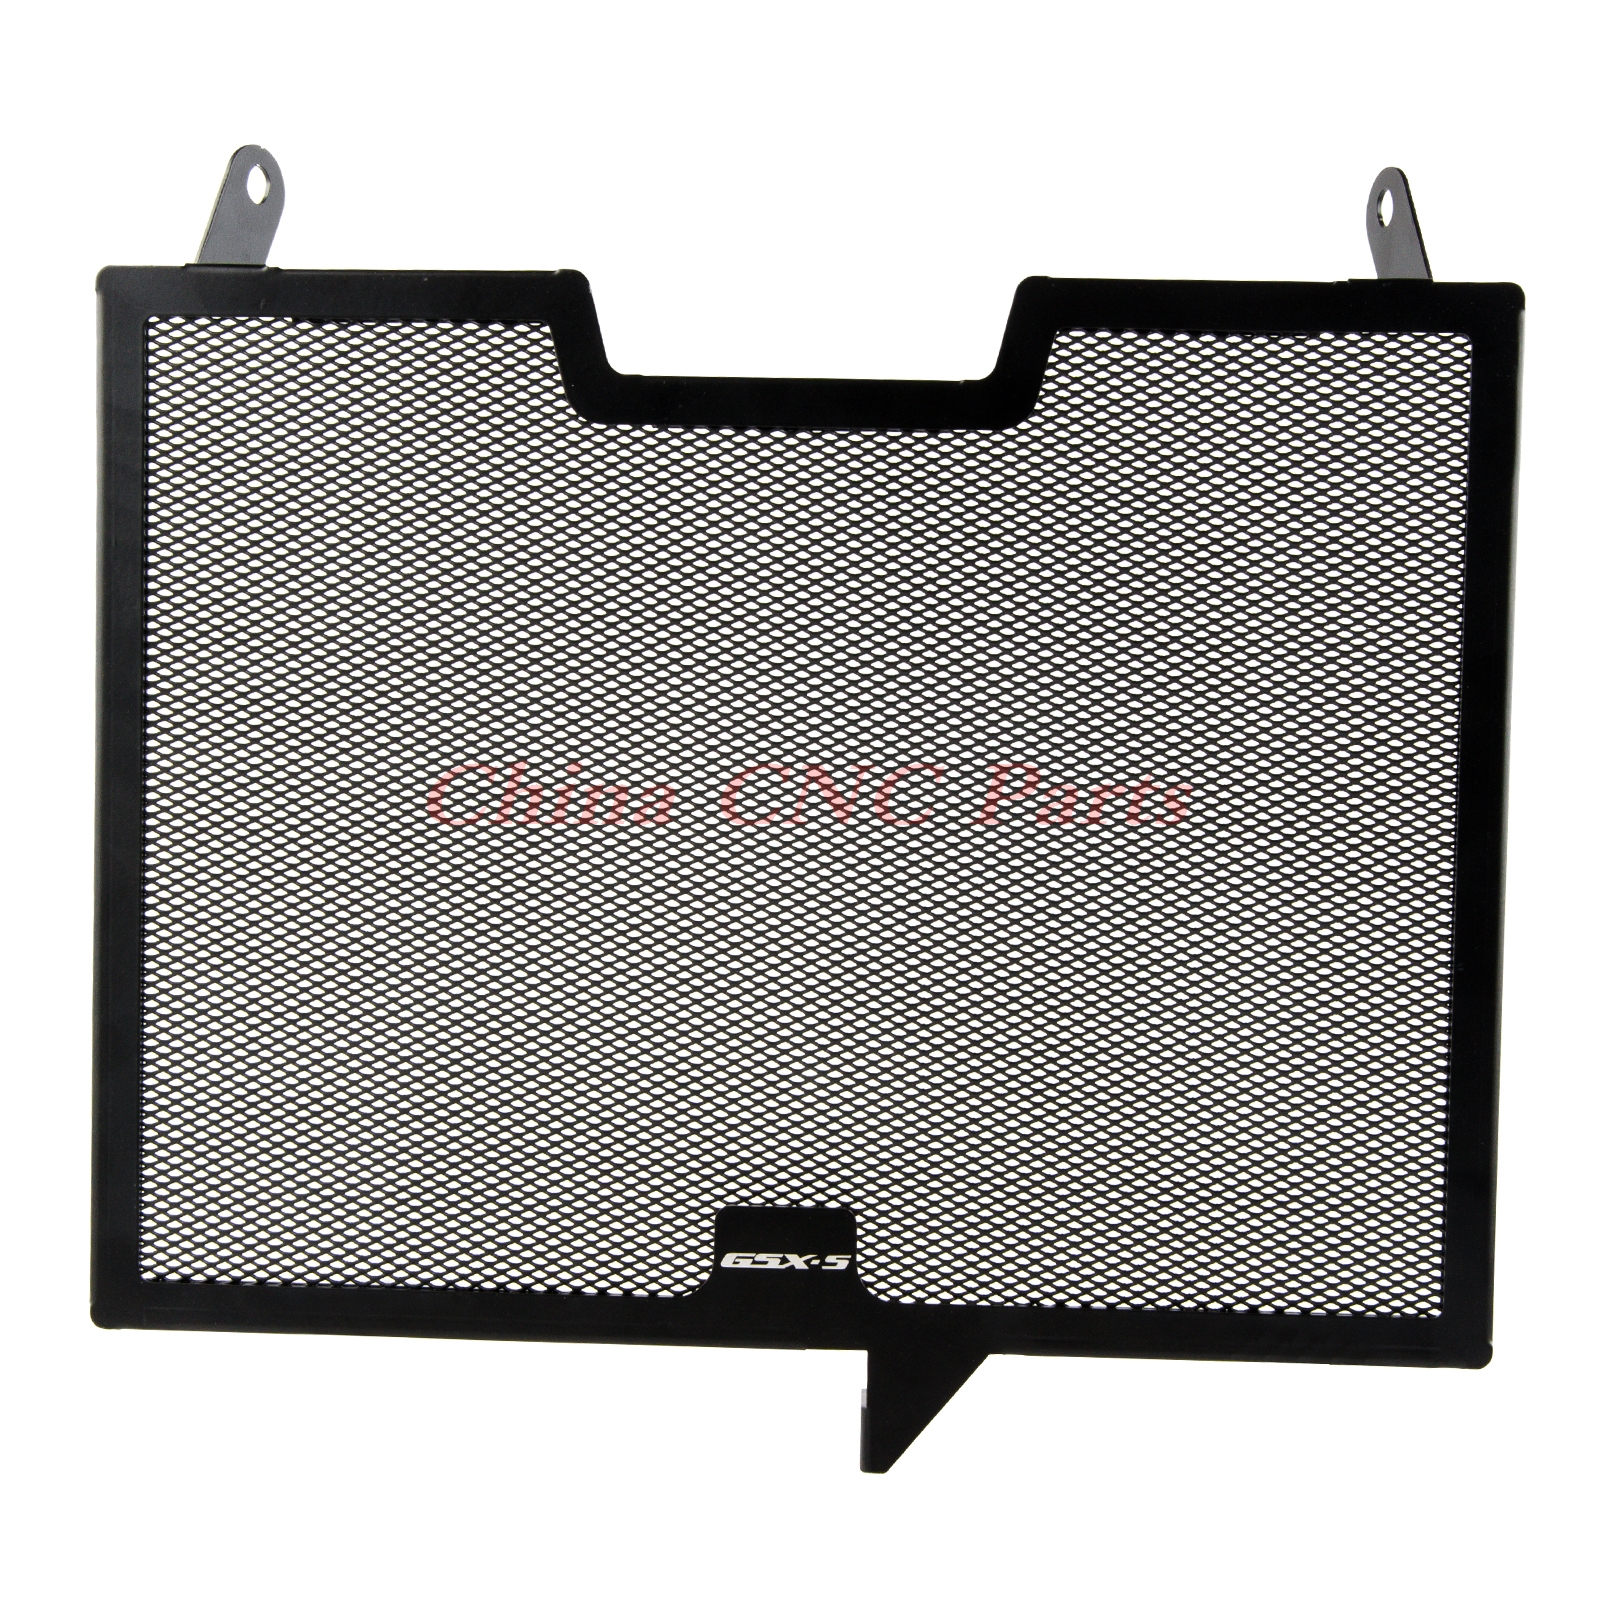 NICECNC Motorcycle Grille Radiator Cover Oil Water Cooler For Suzuki GSX-S1000 GSXS1000 2015 2016 2017<br>